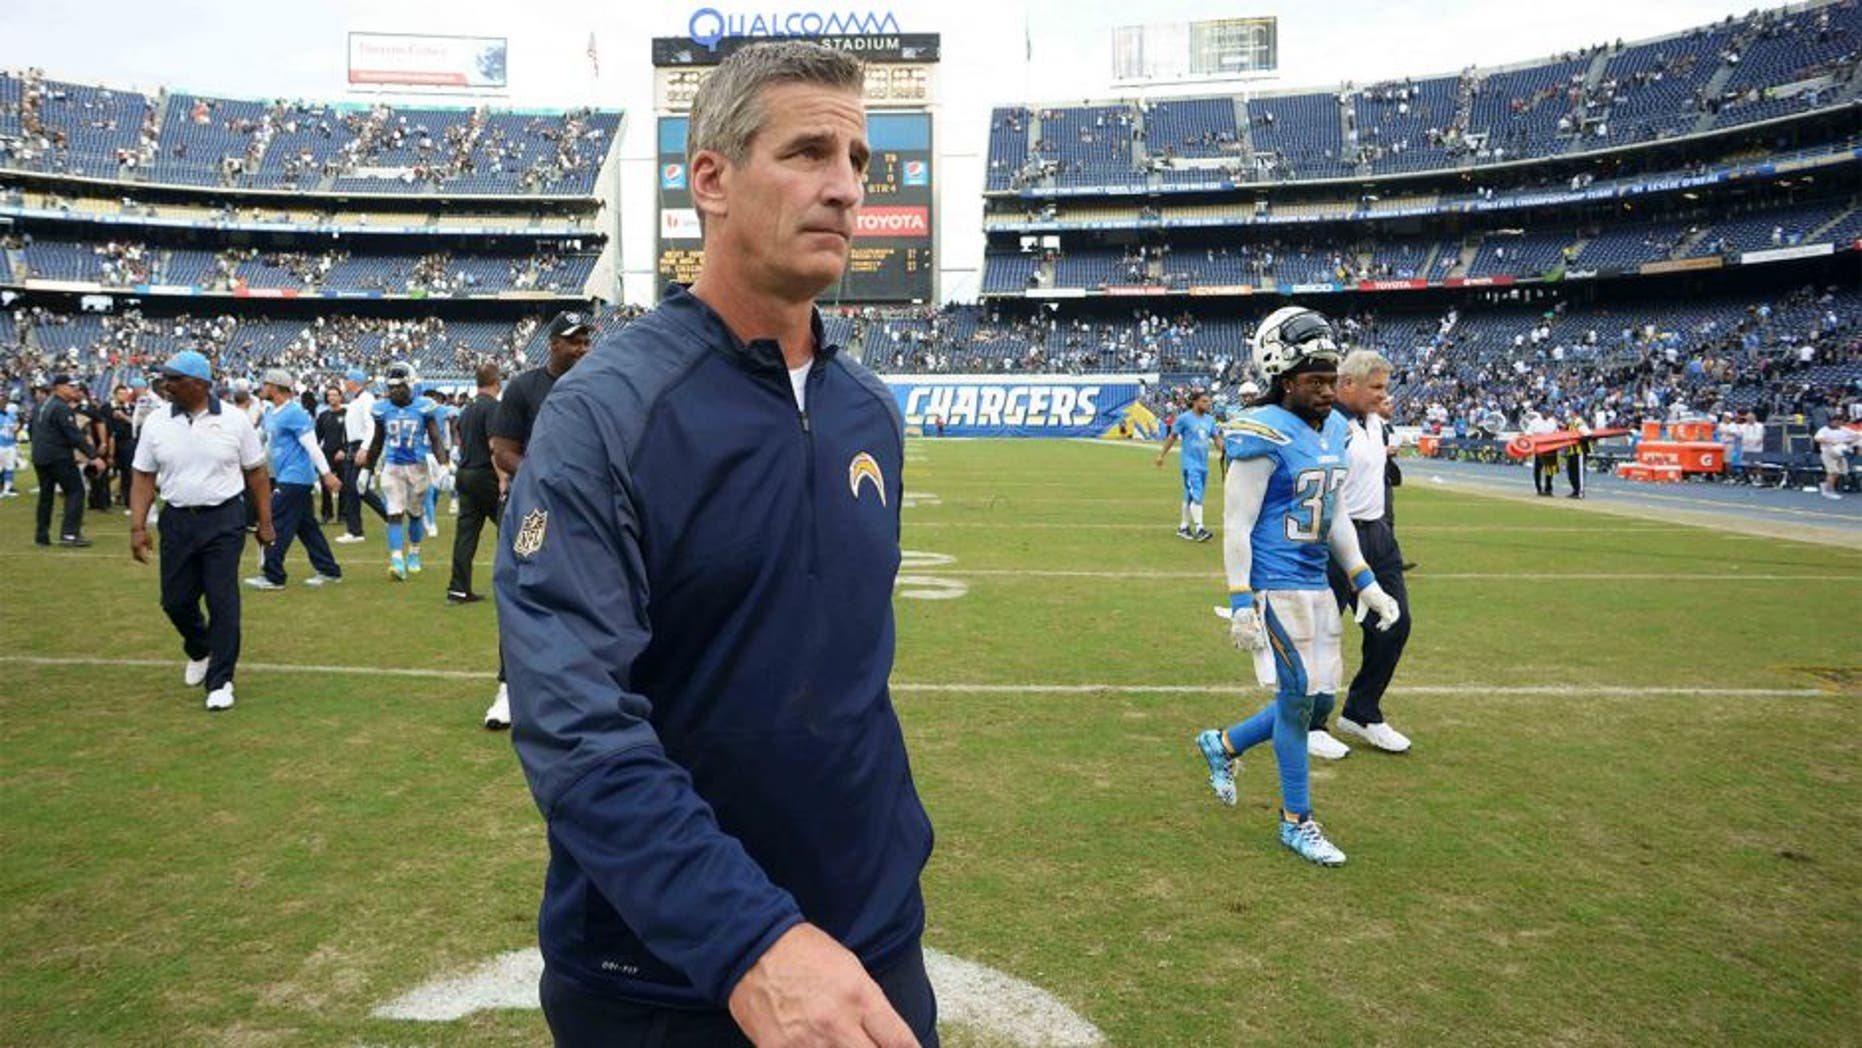 Oct 25, 2015; San Diego, CA, USA; San Diego Chargers offensive coordinator Frank Reich walks off the field after the Chargers lost to the Oakland Raiders 39-27 at Qualcomm Stadium. Mandatory Credit: Jake Roth-USA TODAY Sports